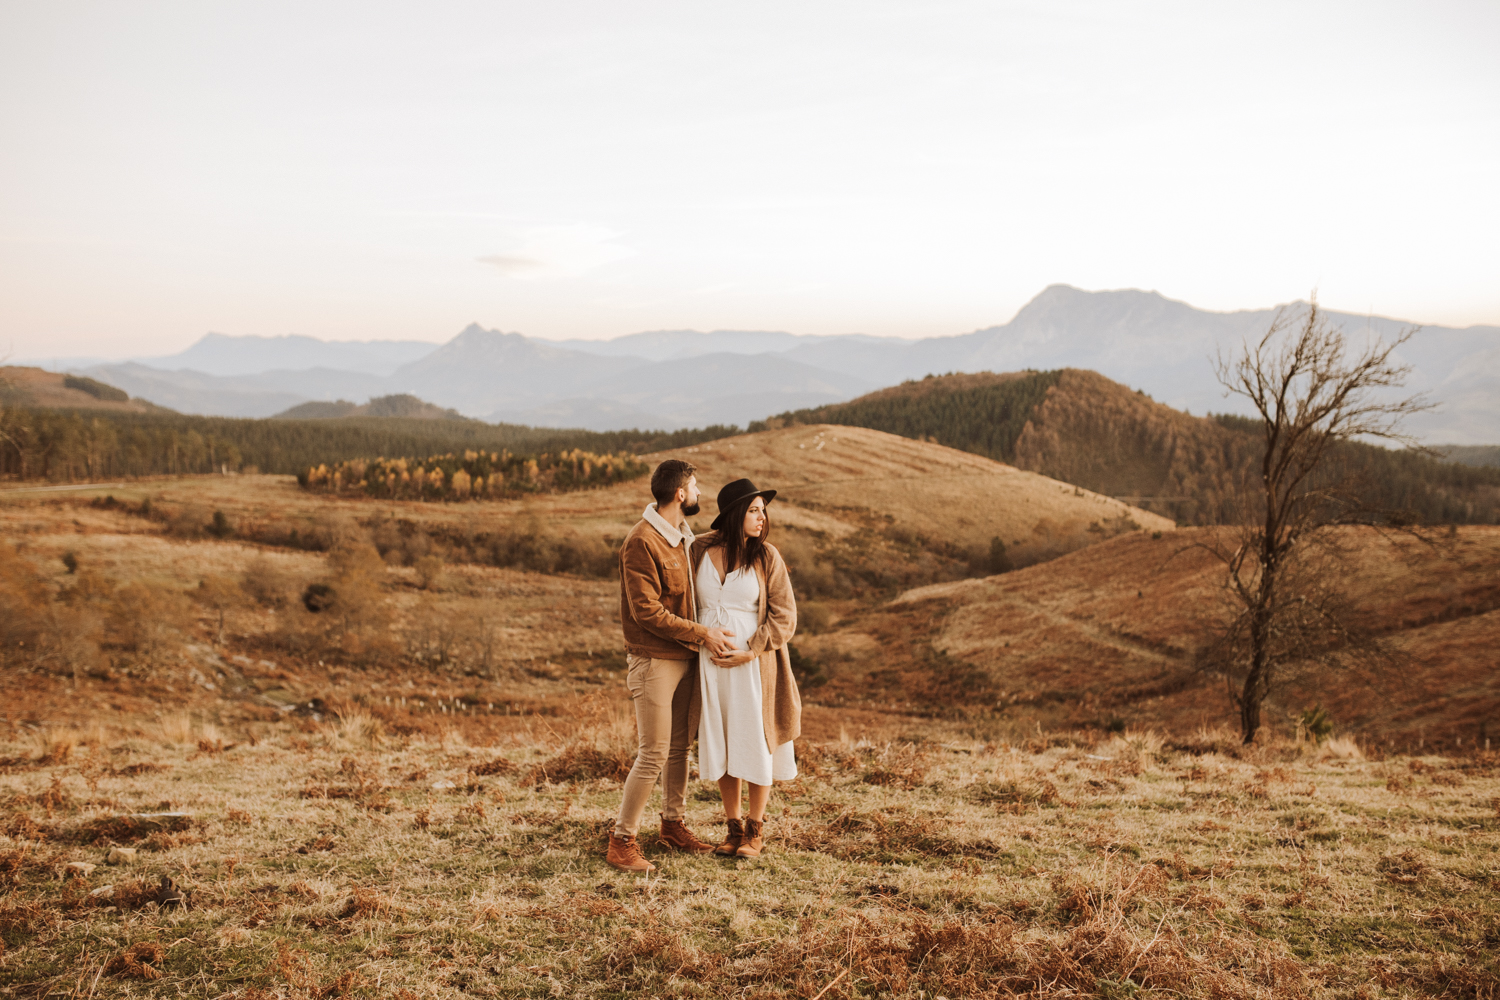 A photo of a man and a pregnant woman who stand on a small hill and look in the distance.